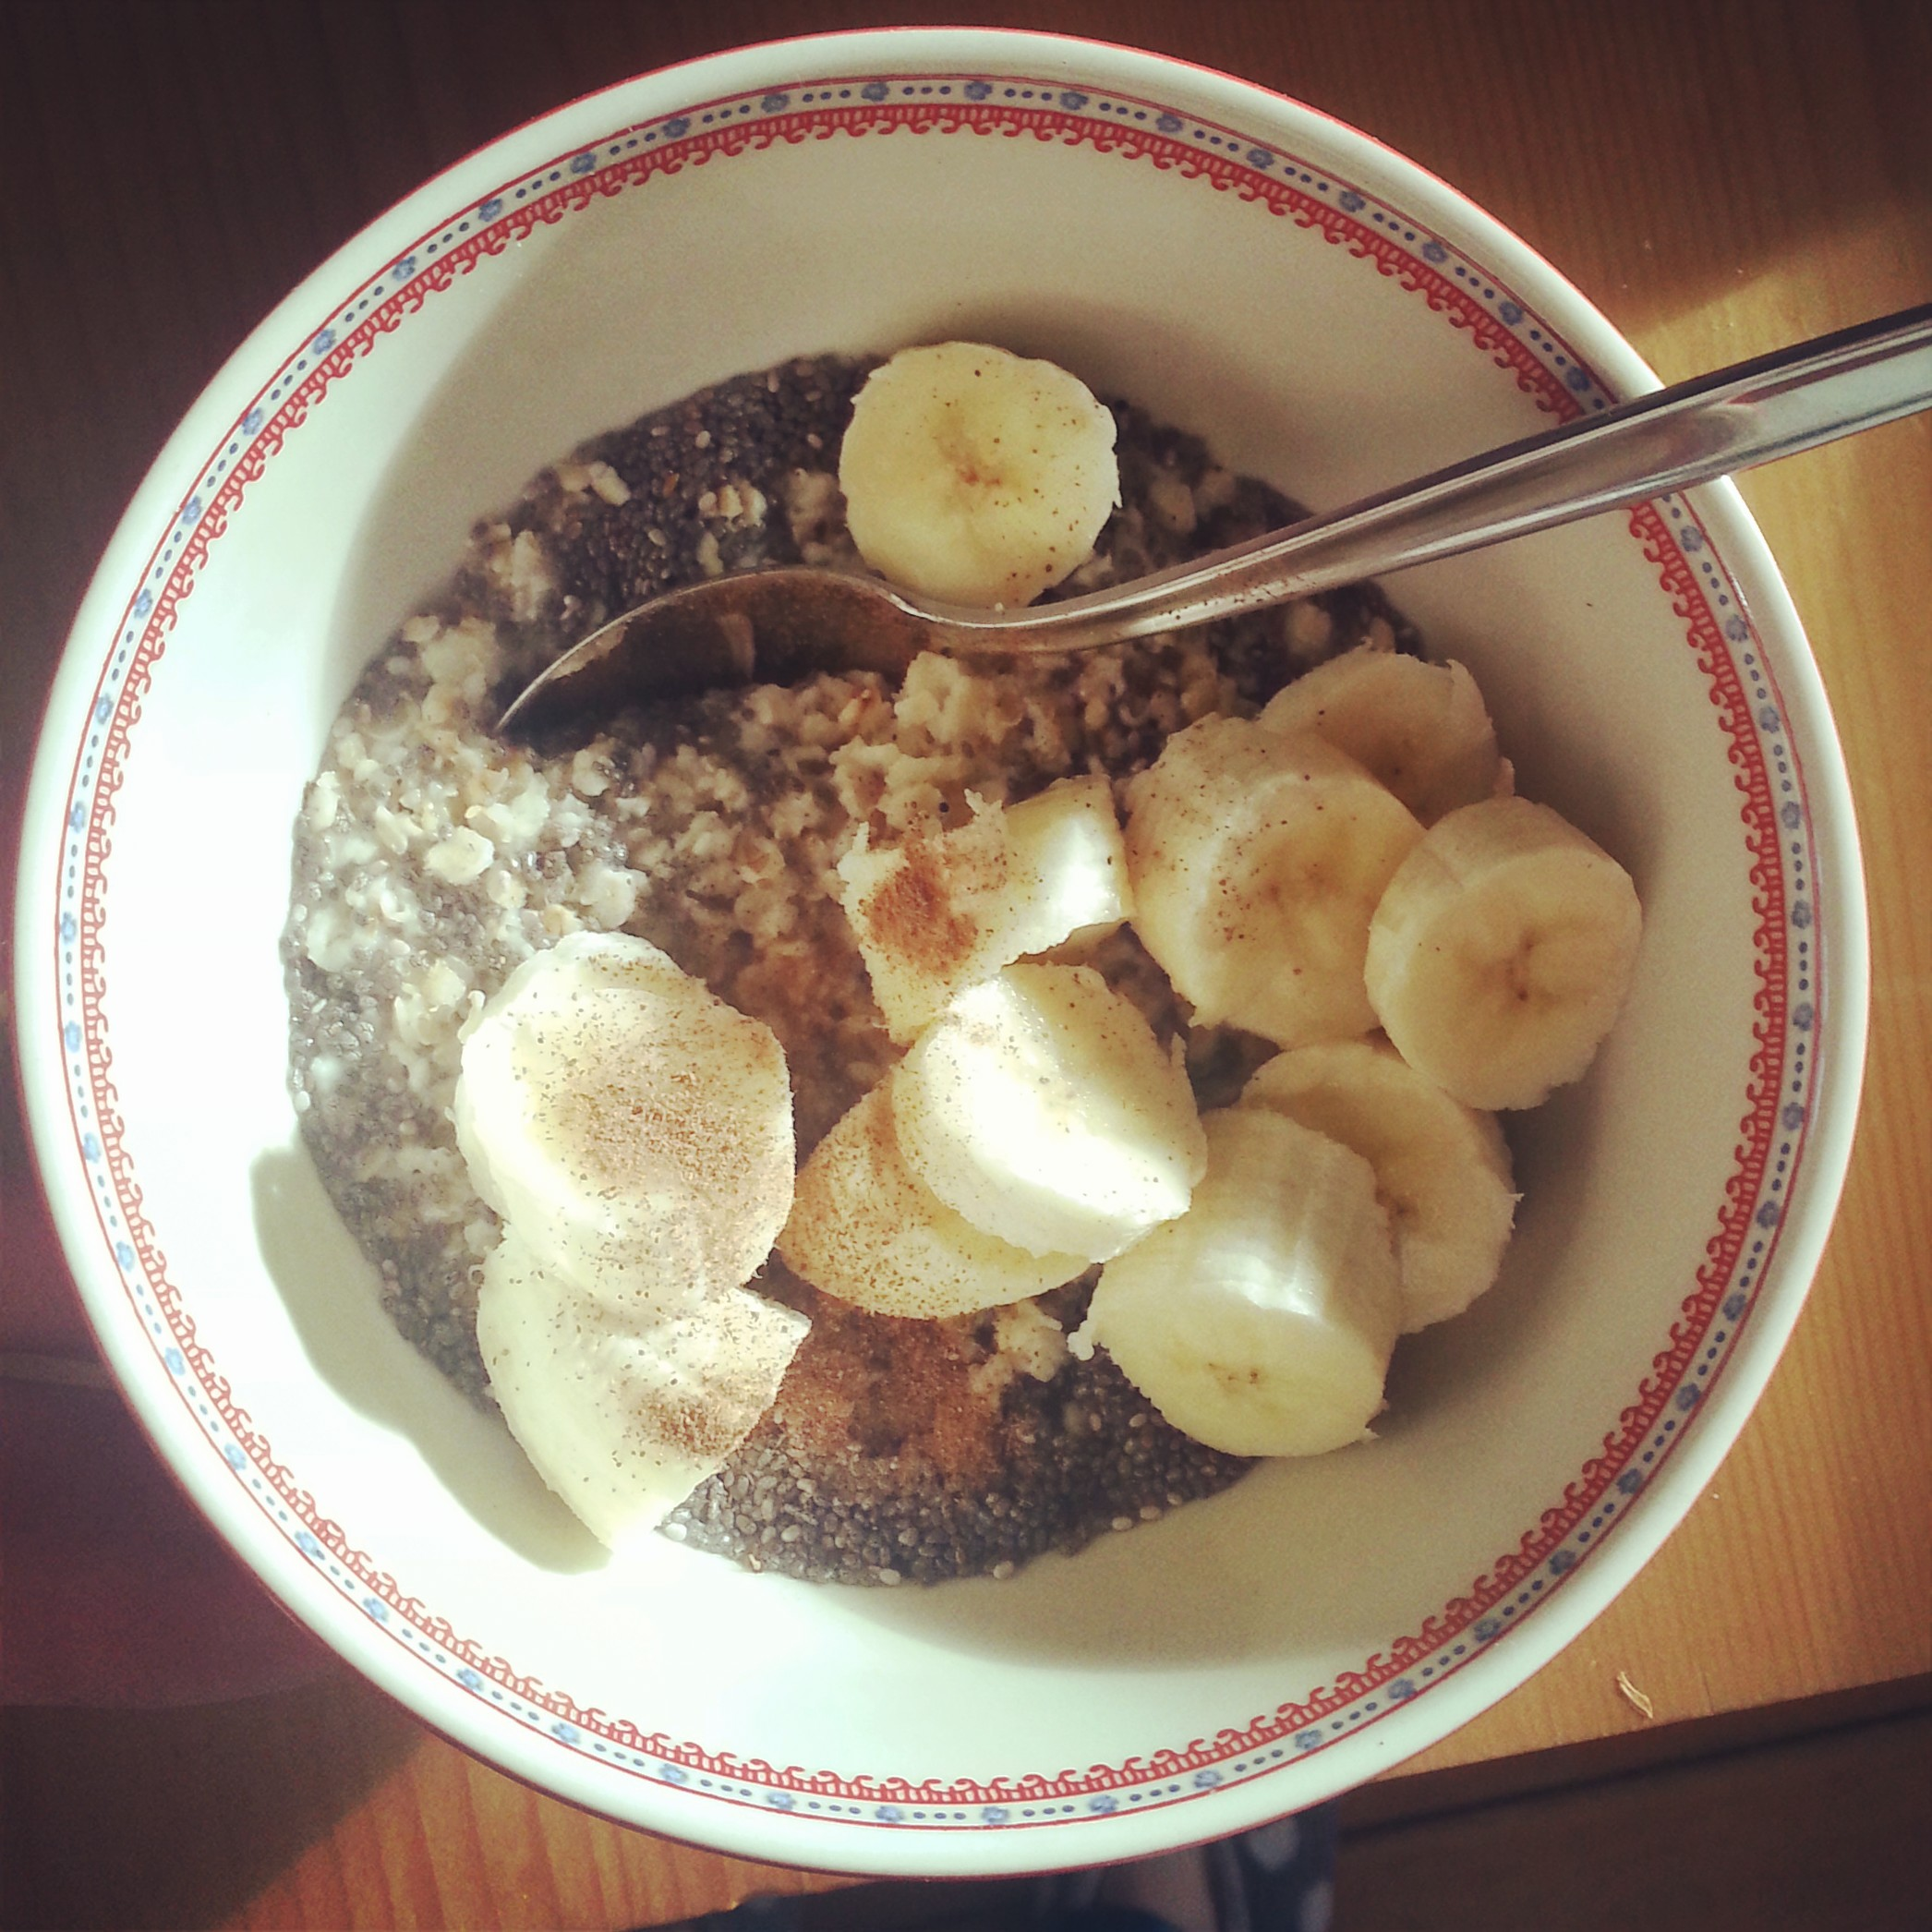 Chia seed and cinnamon oatmeal with honey and banana <3